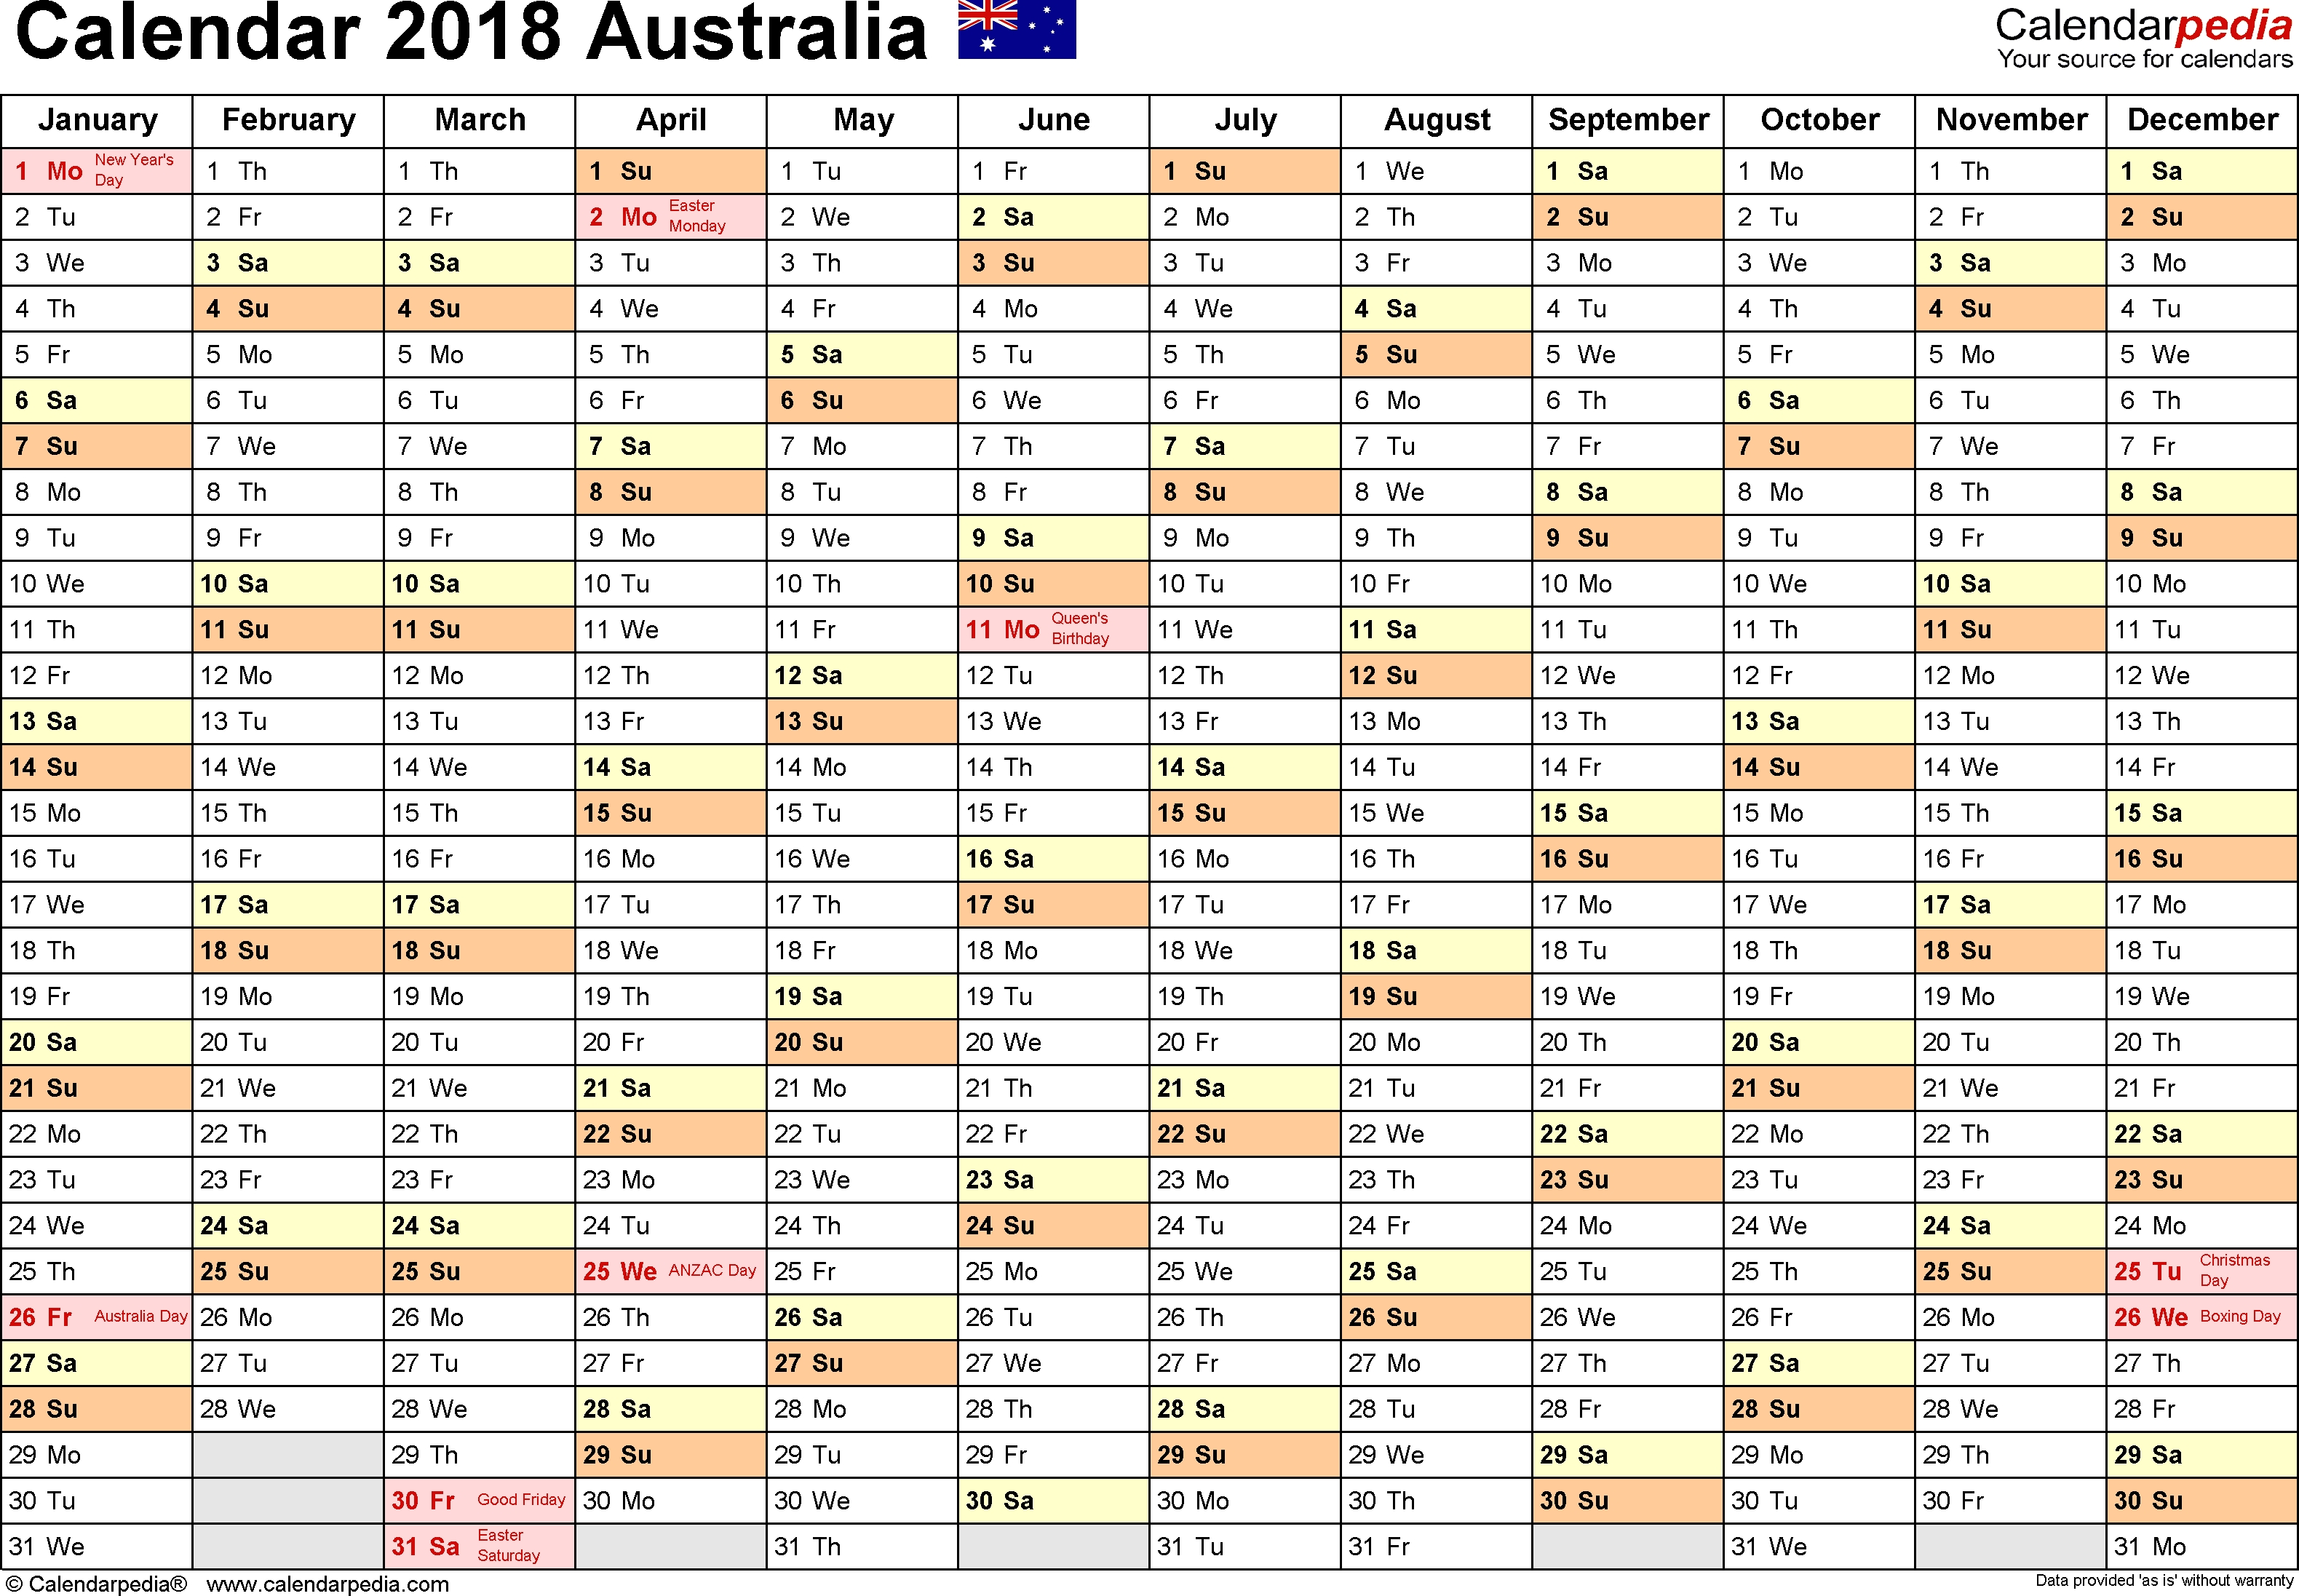 Australia Calendar 2018 - Free Printable Excel Templates intended for September Content Calender Aus Perth